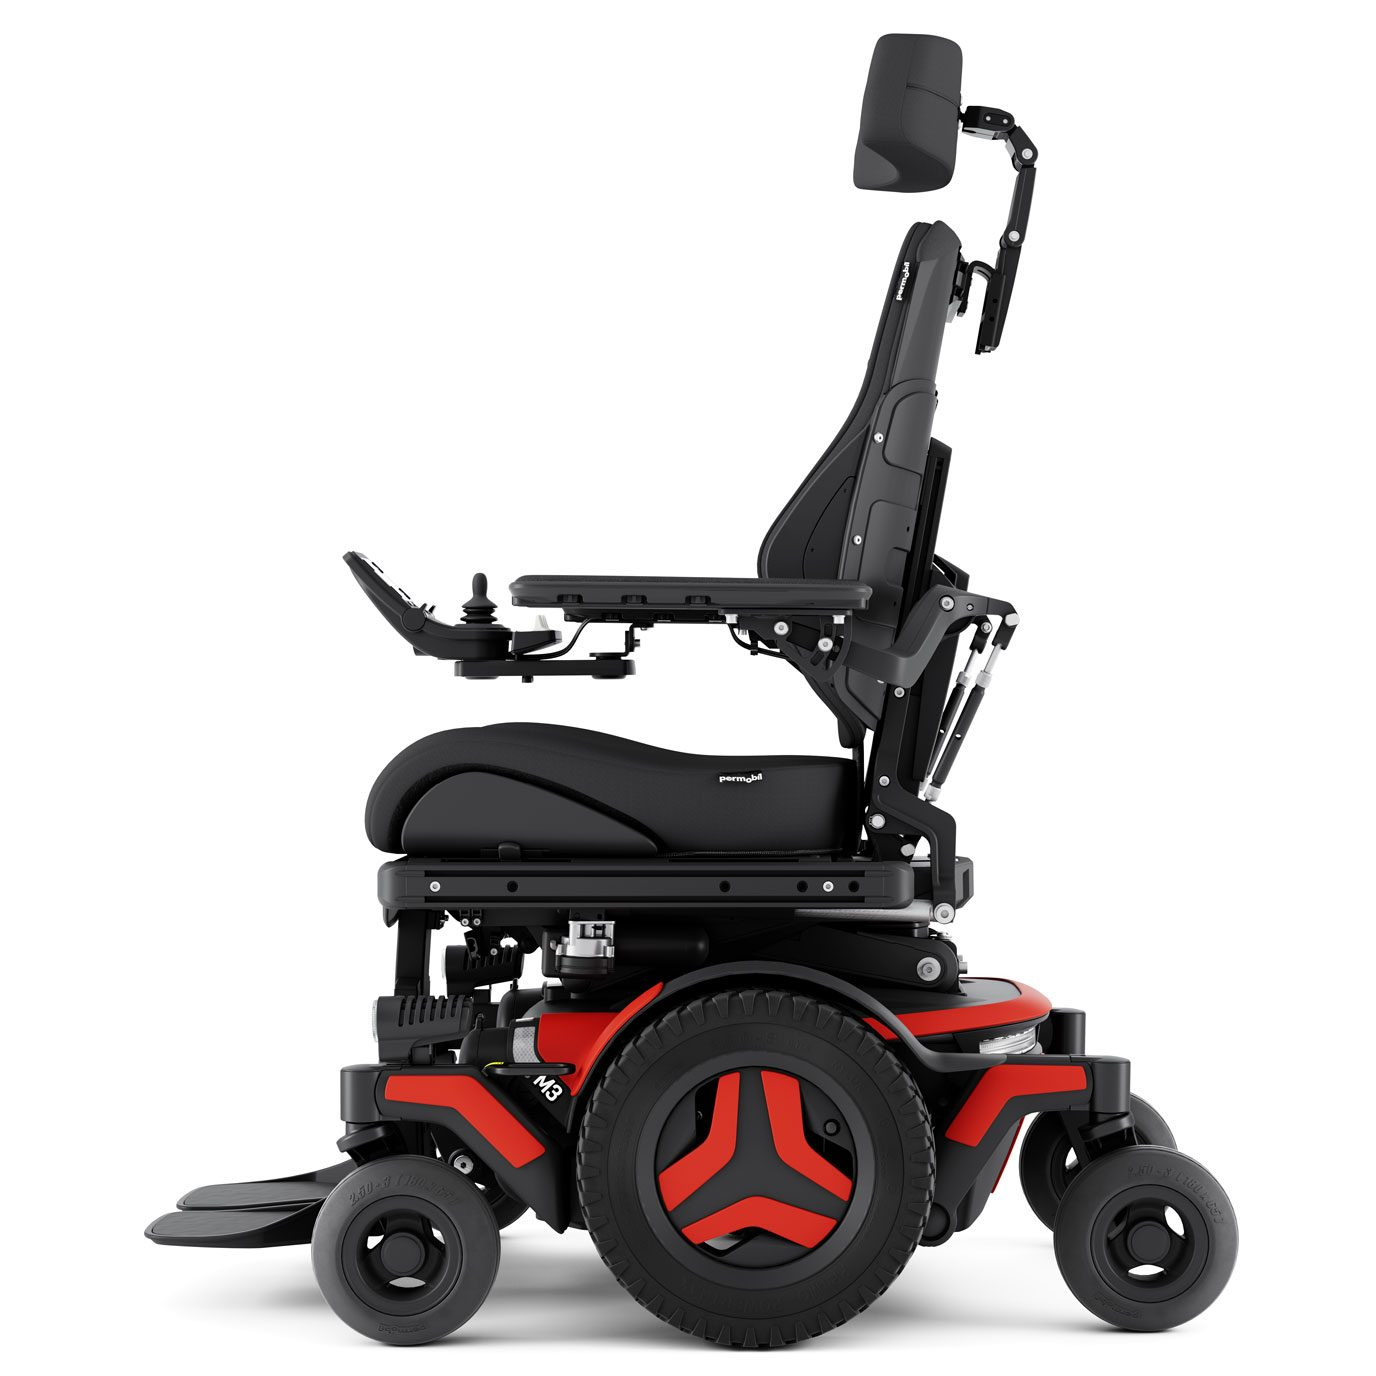 M3 Corpus drive base indoor/outdoor powerchair side view